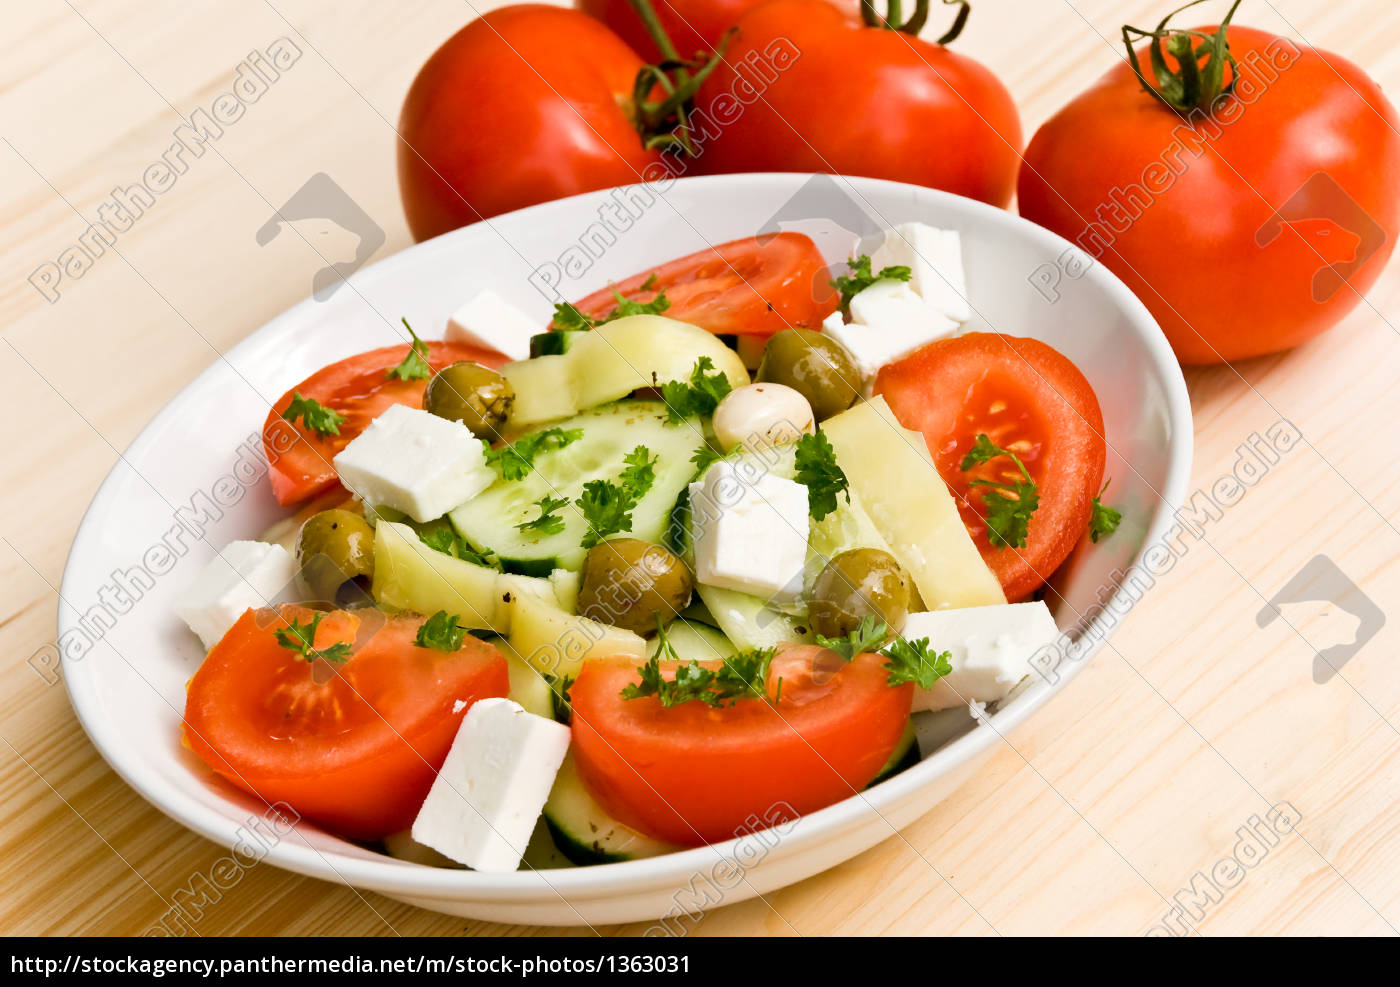 greek, salad - 1363031